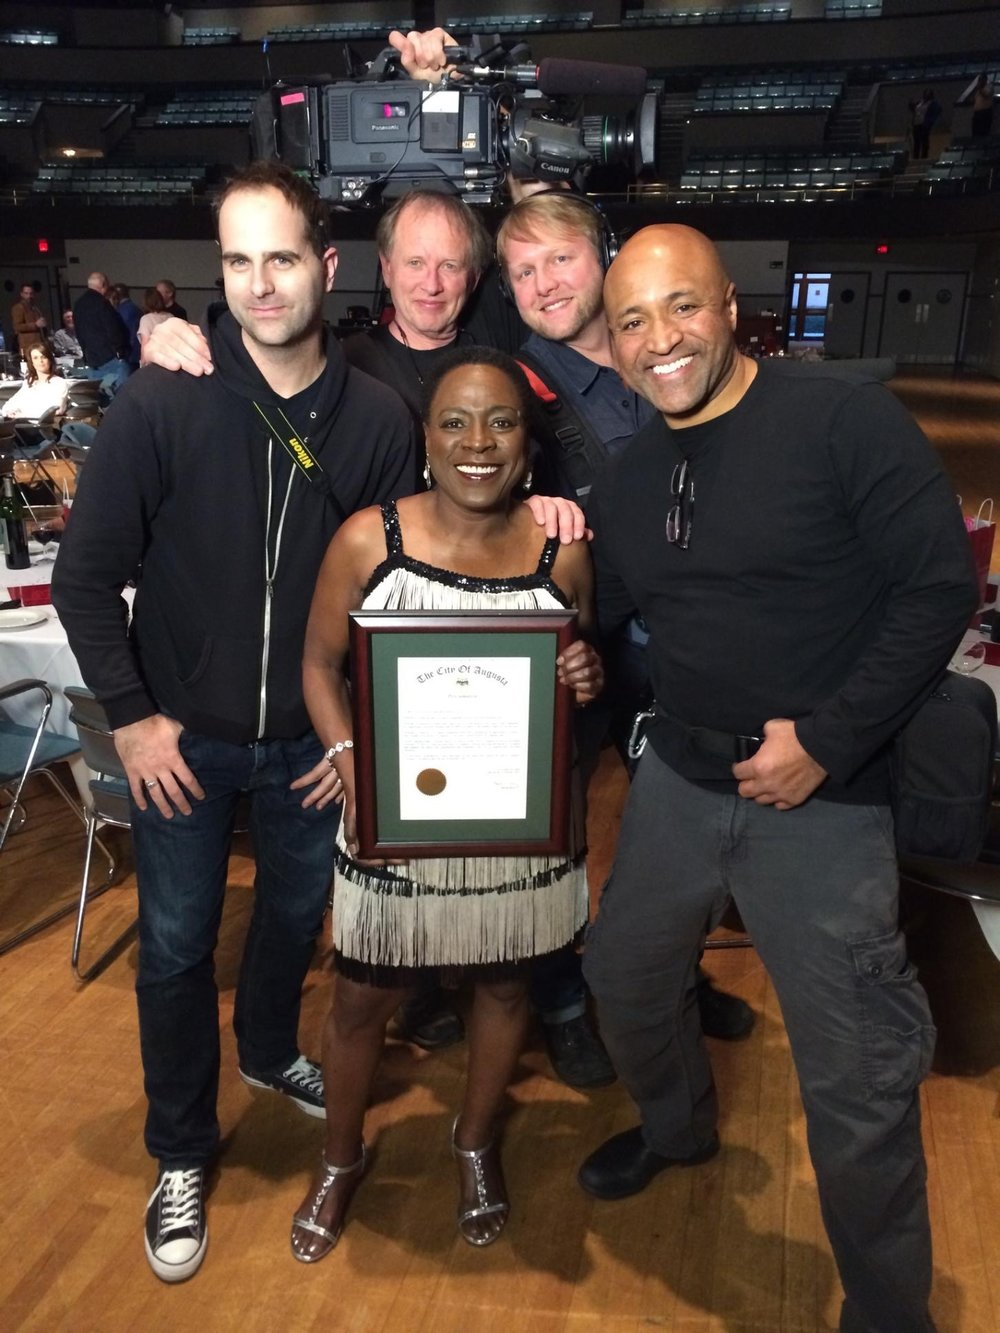 Miss Sharon Jones! And Cabin Creek Film Crew